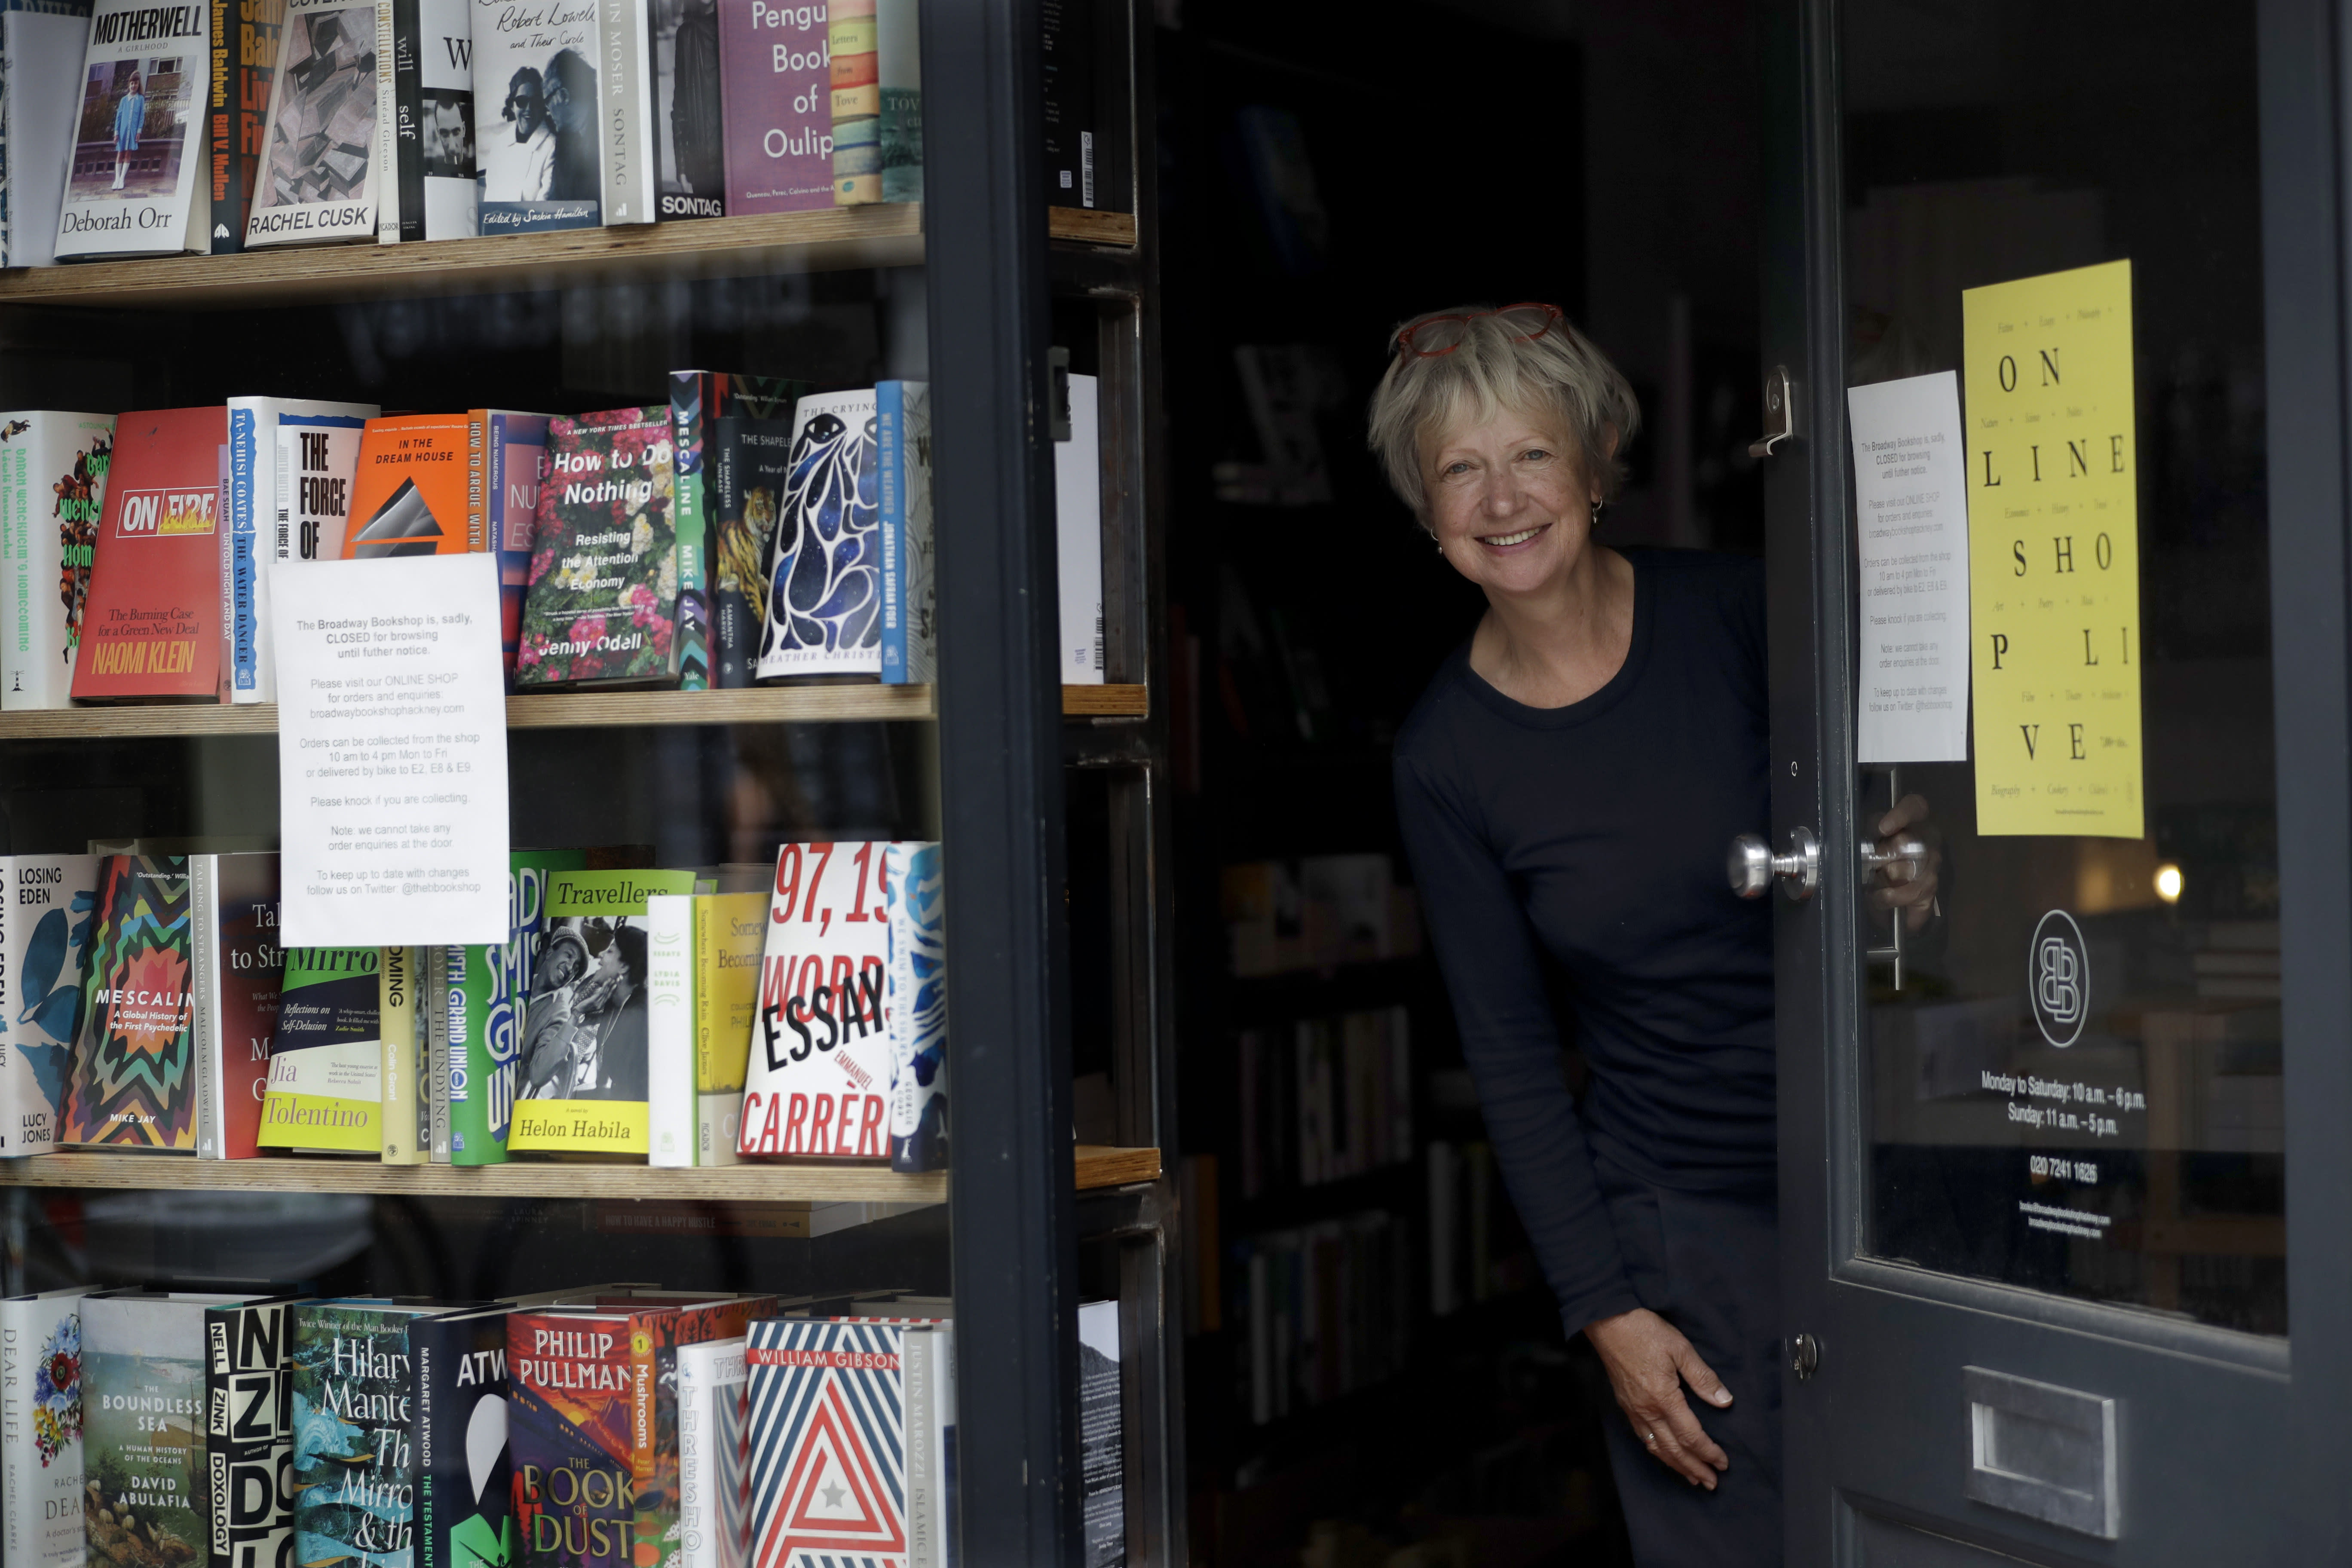 Jane Howe, owner of the Broadway Bookshop, poses for a photo in the doorway of her shop on Broadway Market in Hackney, east London on June 28, 2020. Before the coronavirus, Howe never saw the need for a website. Shoppers would pack the tidy shop on weekends, with more often waiting outside, drawn by the store's personalized service. She finally launched a website in mid-June and loyal customers have been placing orders, but sales are far below what they were before the pandemic. (AP Photo/Matt Dunham)